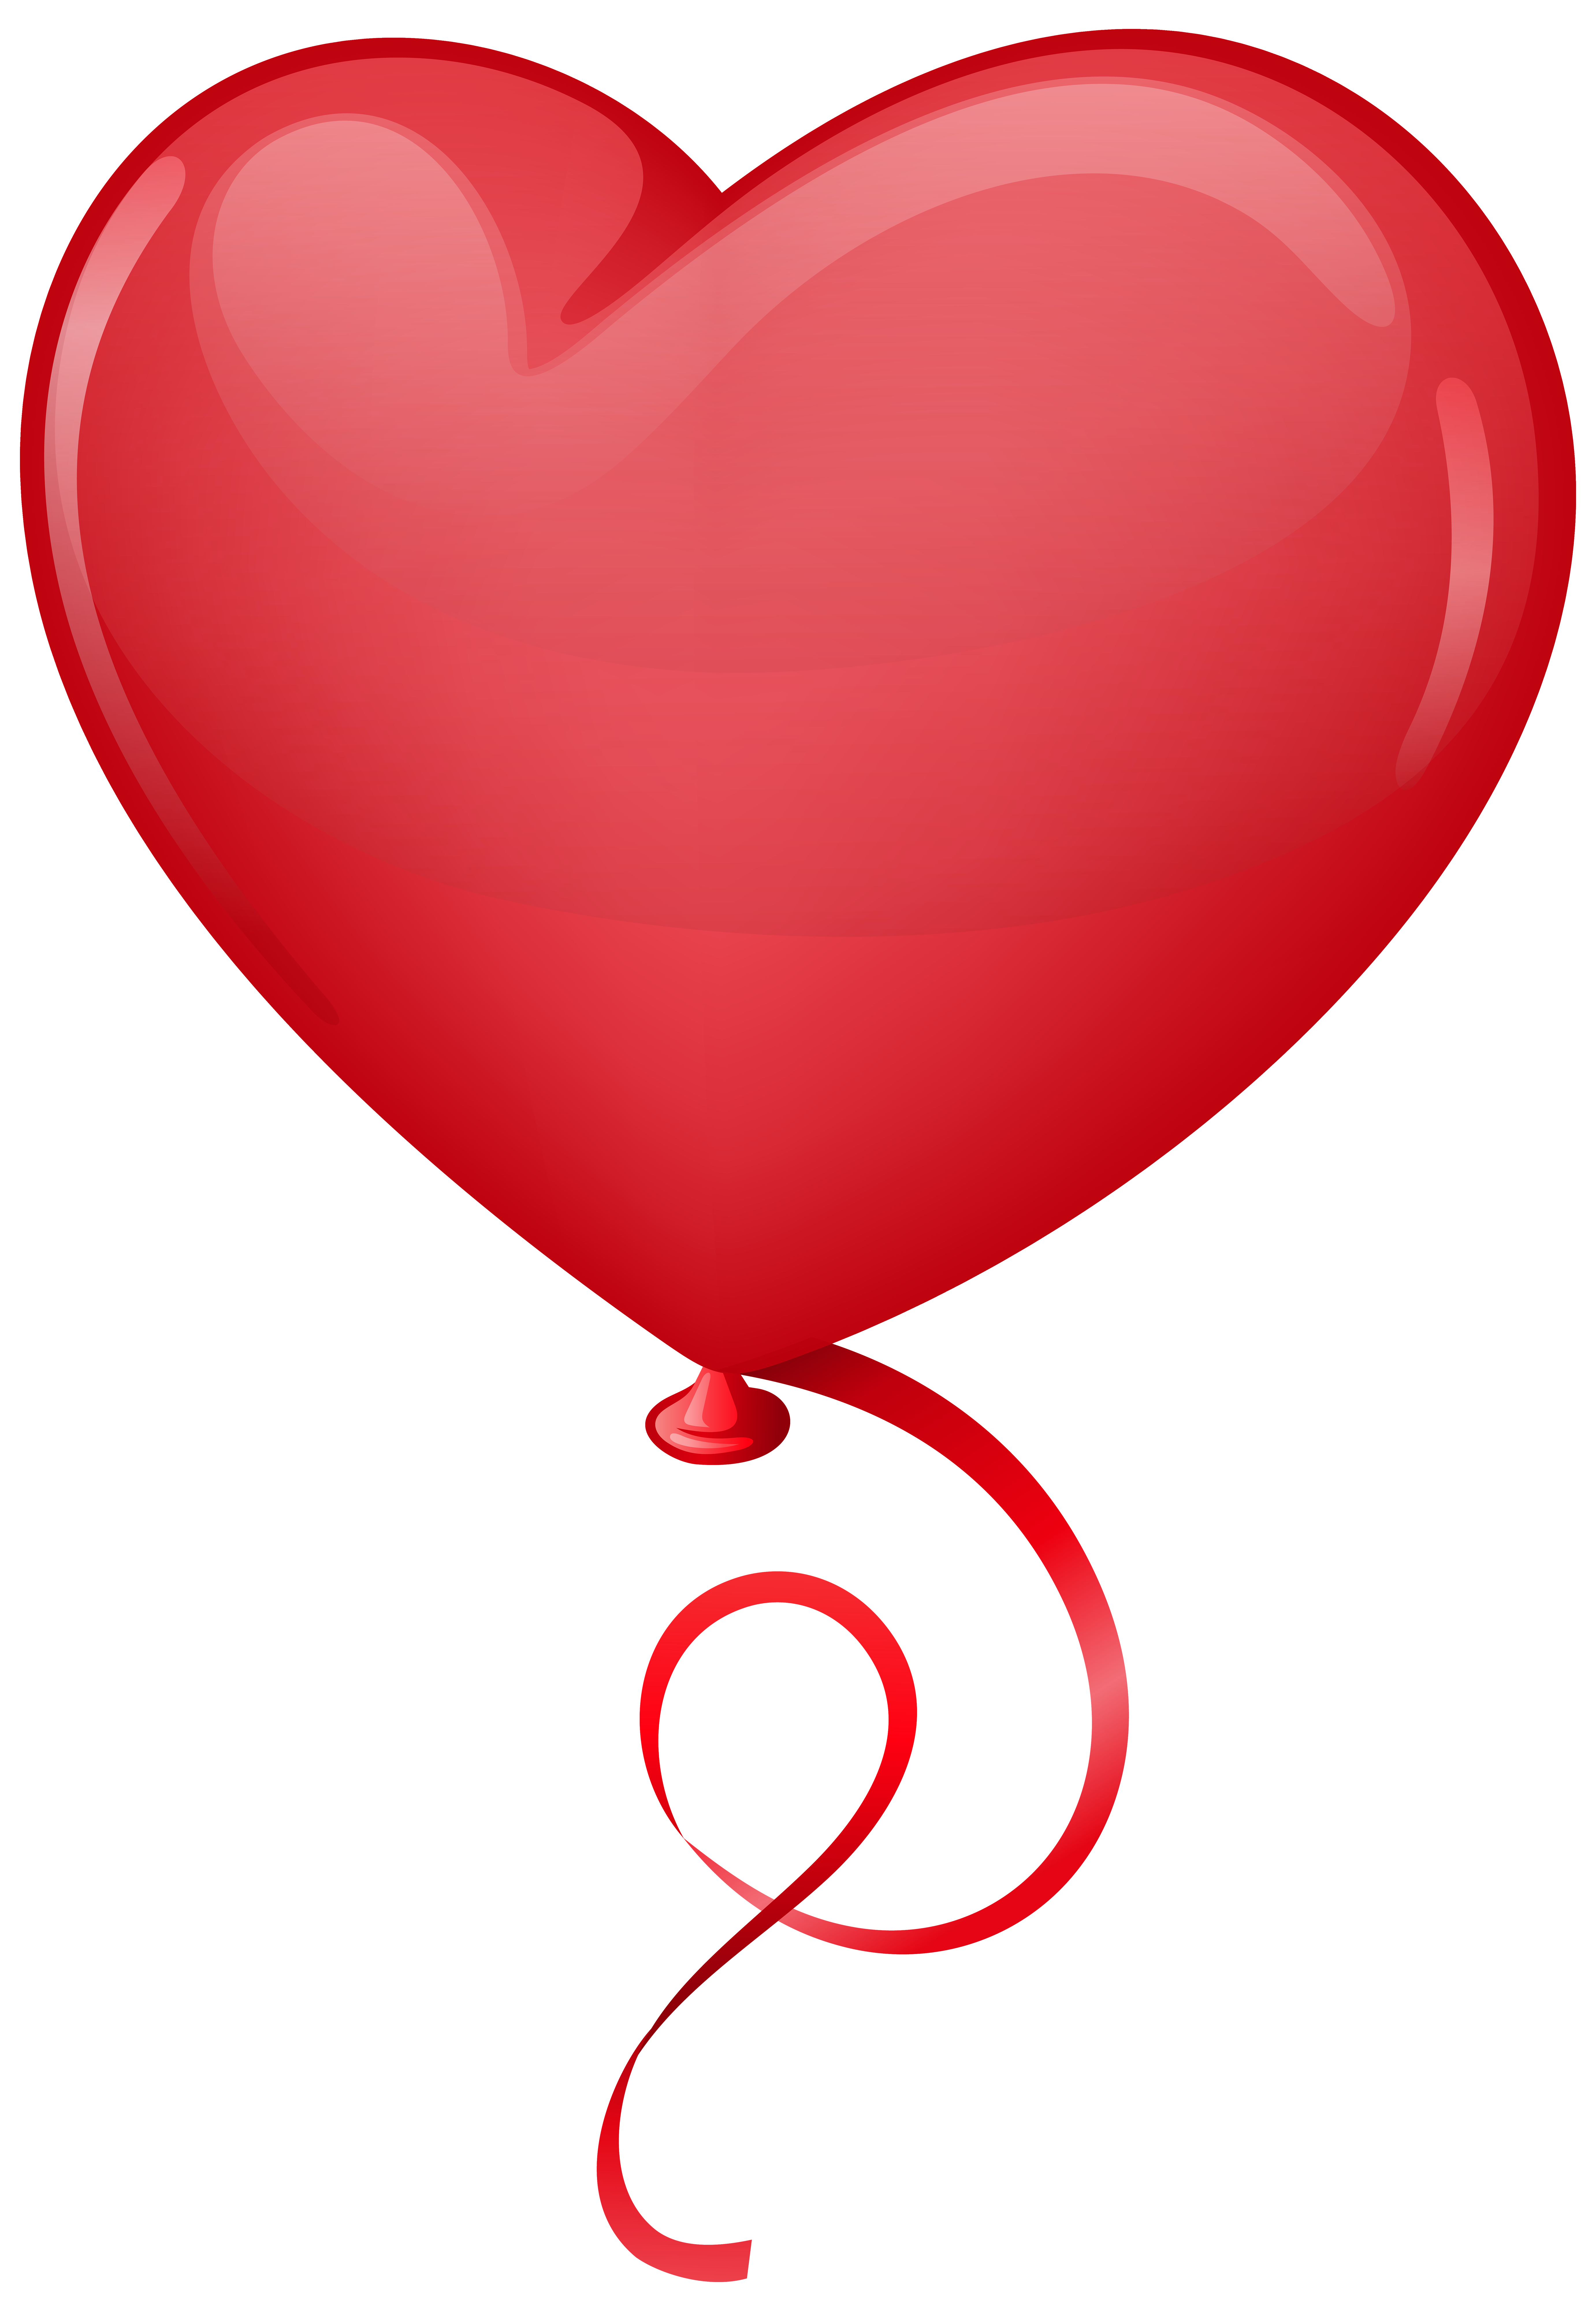 5526x8000 Red Heart Balloon Clip Art Png Imageu200b Gallery Yopriceville